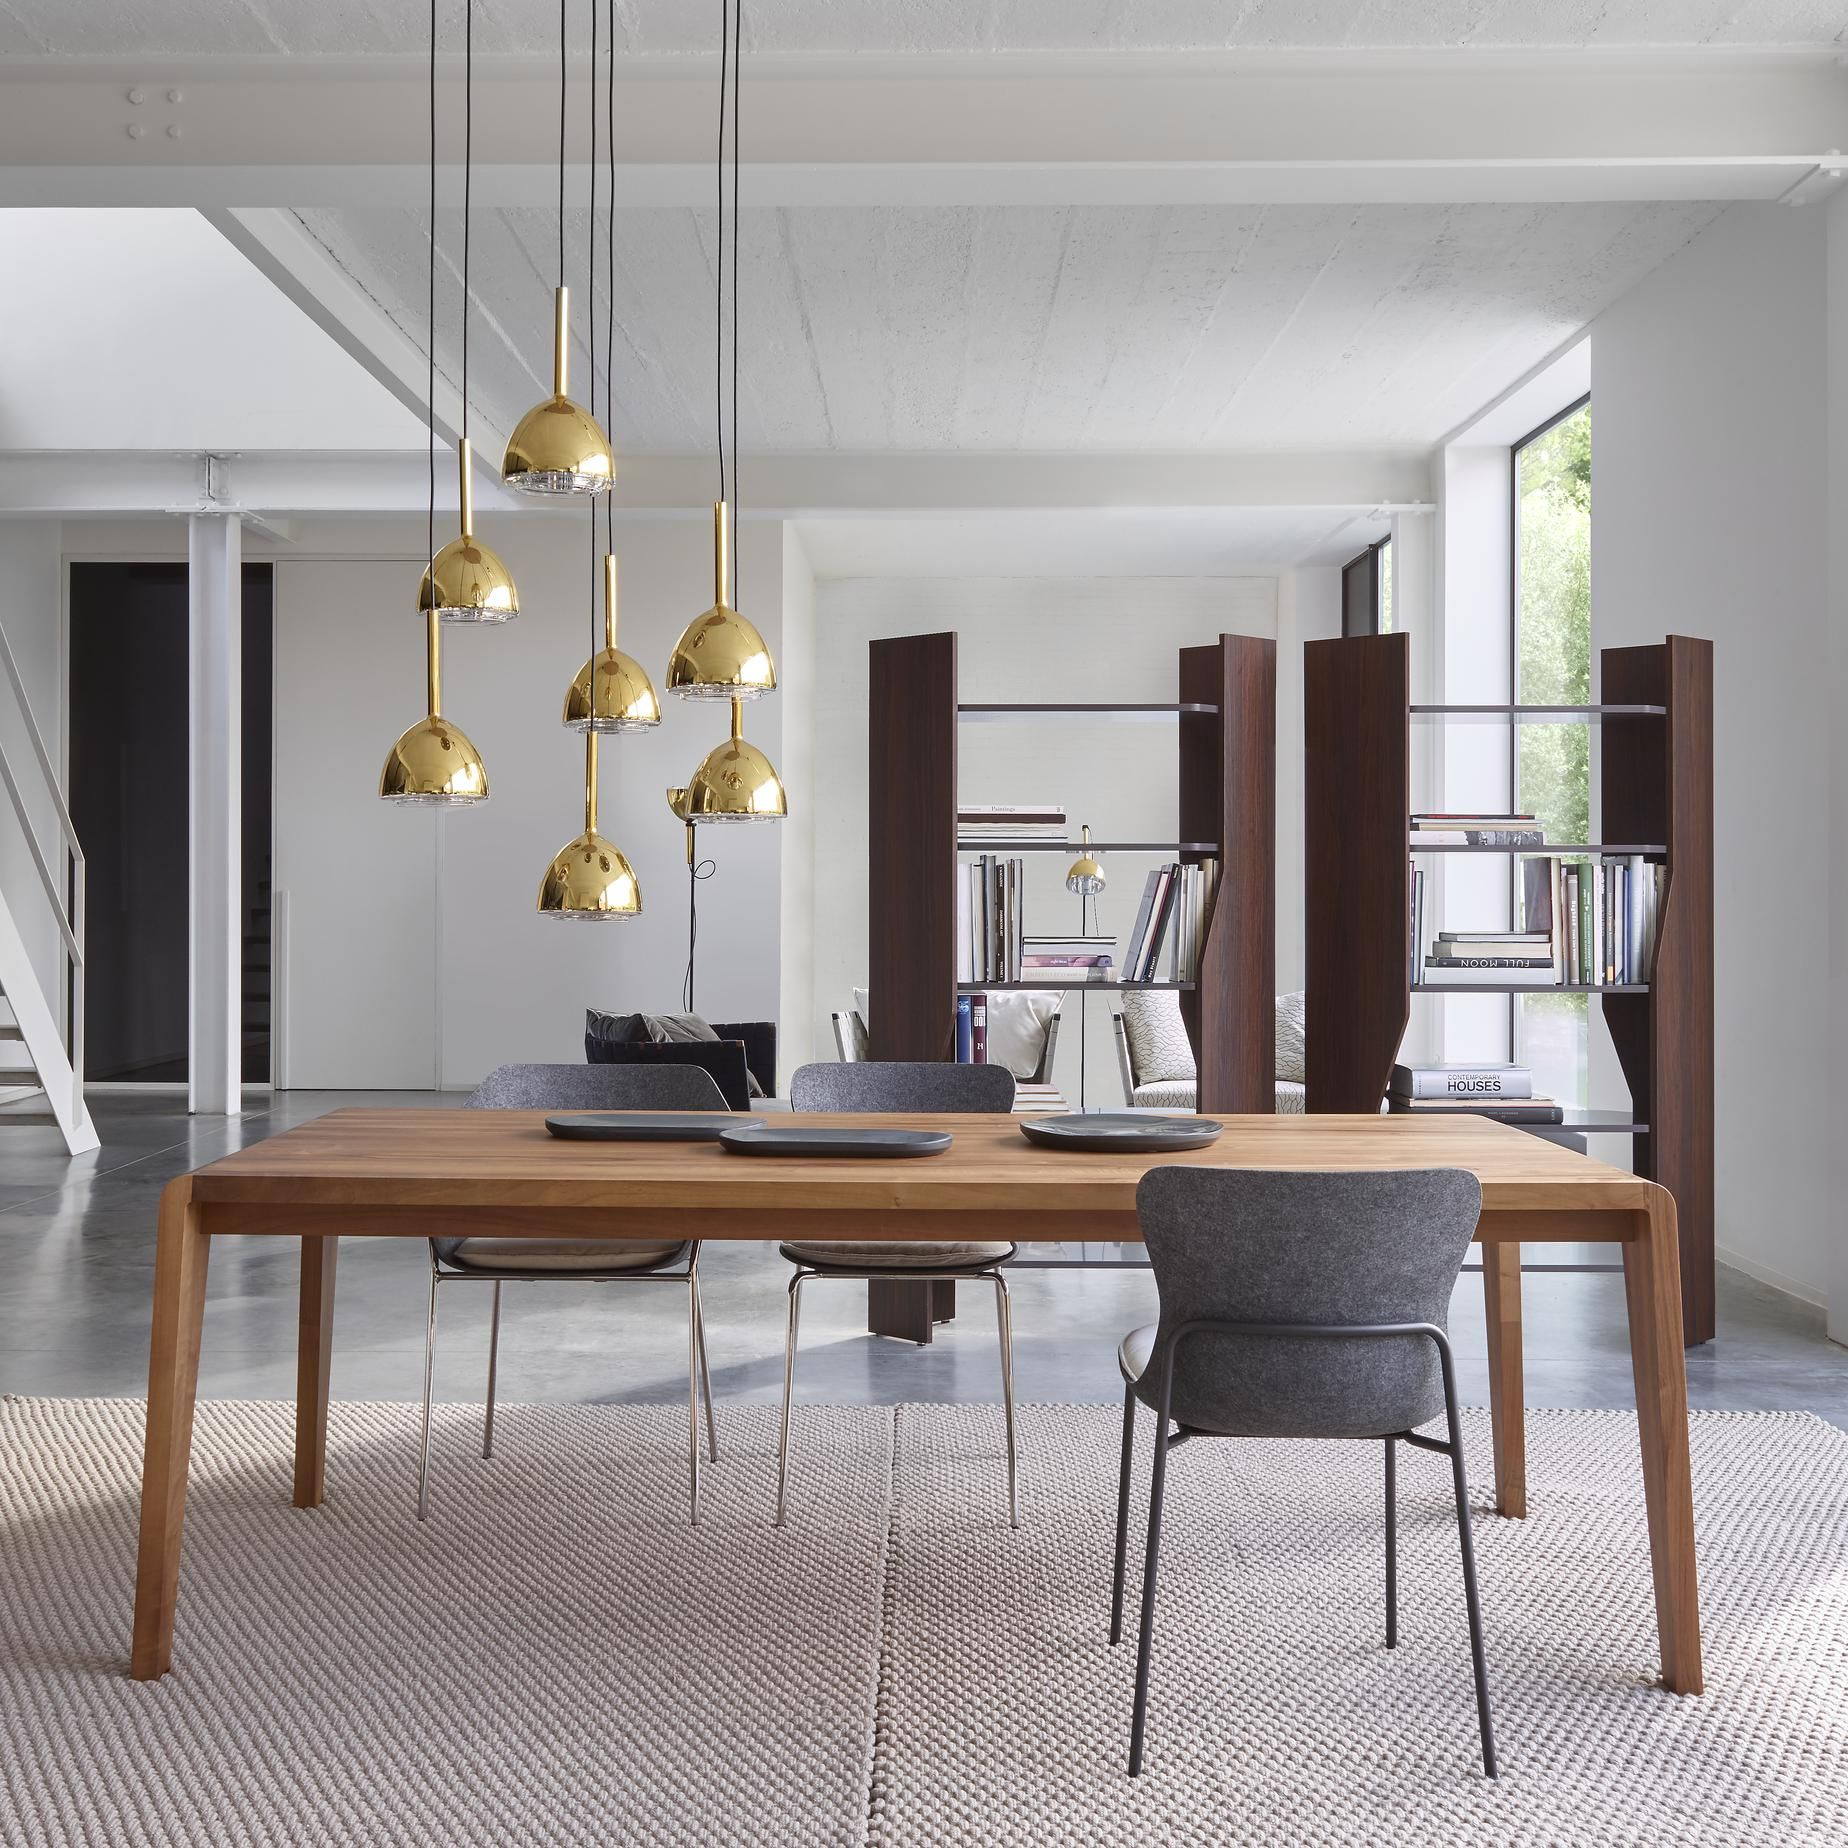 Island dining chair by ligne roset modern dining chairs los angeles - Ettoriano Chairs Designer Claudio Dondoli Marco Pocci Ligne Roset Ligne Rosettablewaredining